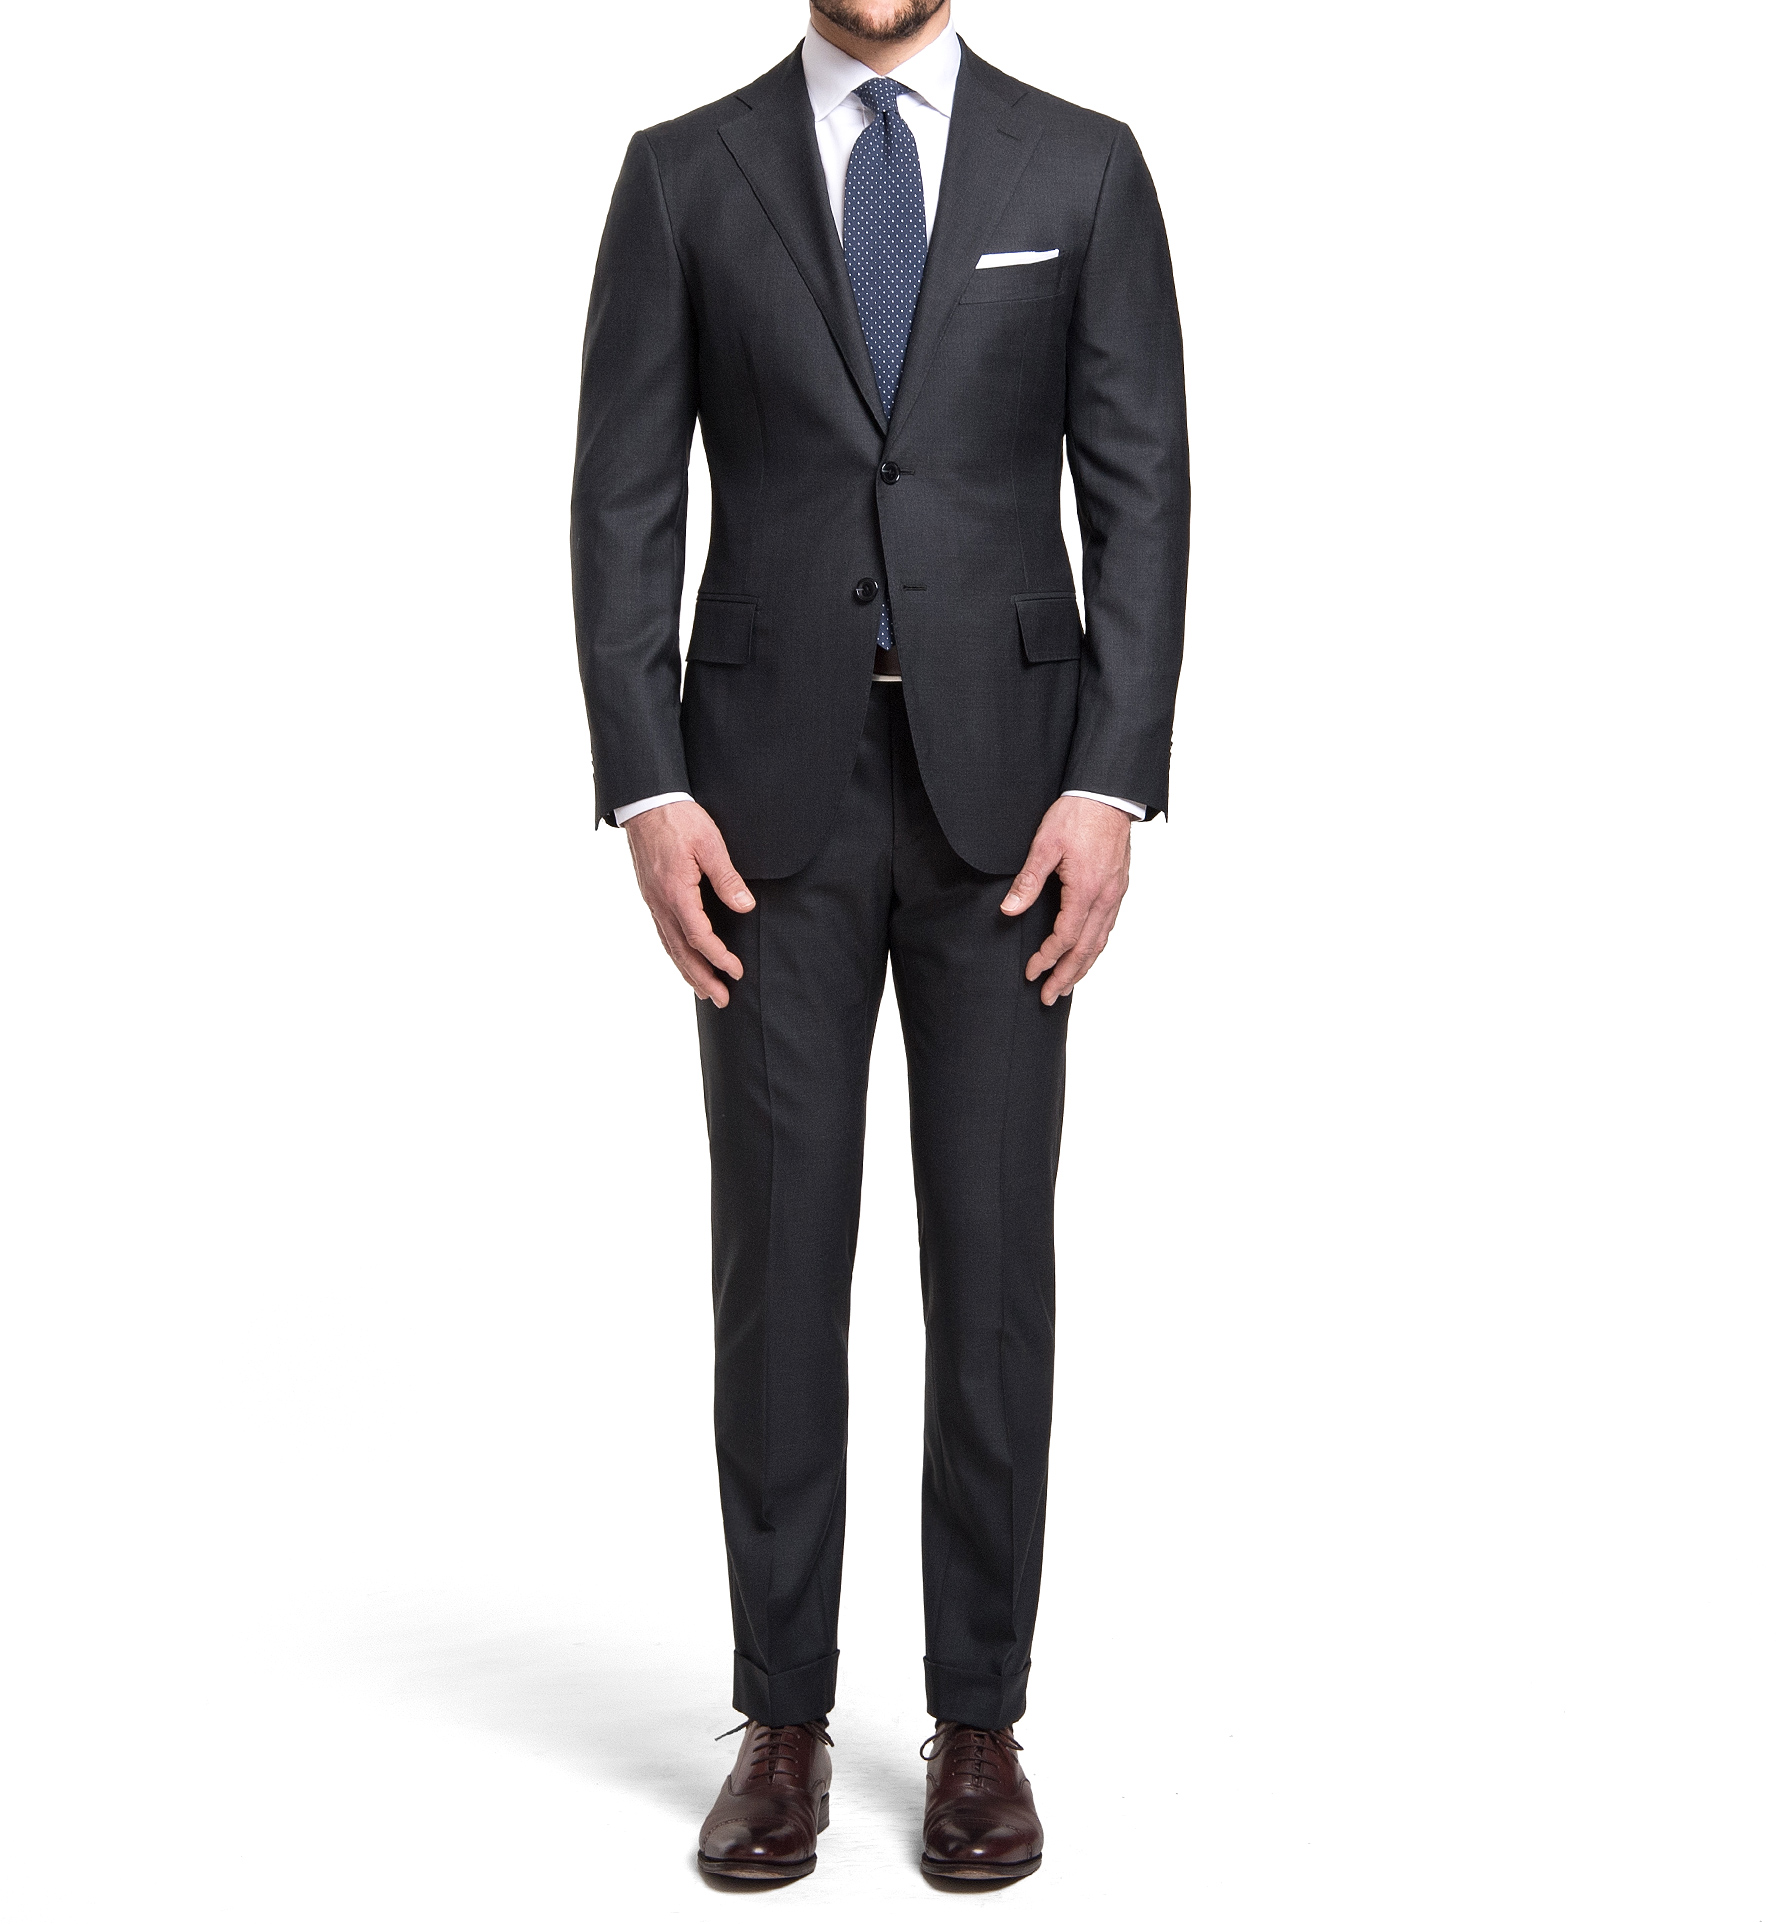 Zoom Image of Mercer Charcoal S150s Wool Suit with Cuffed Trouser